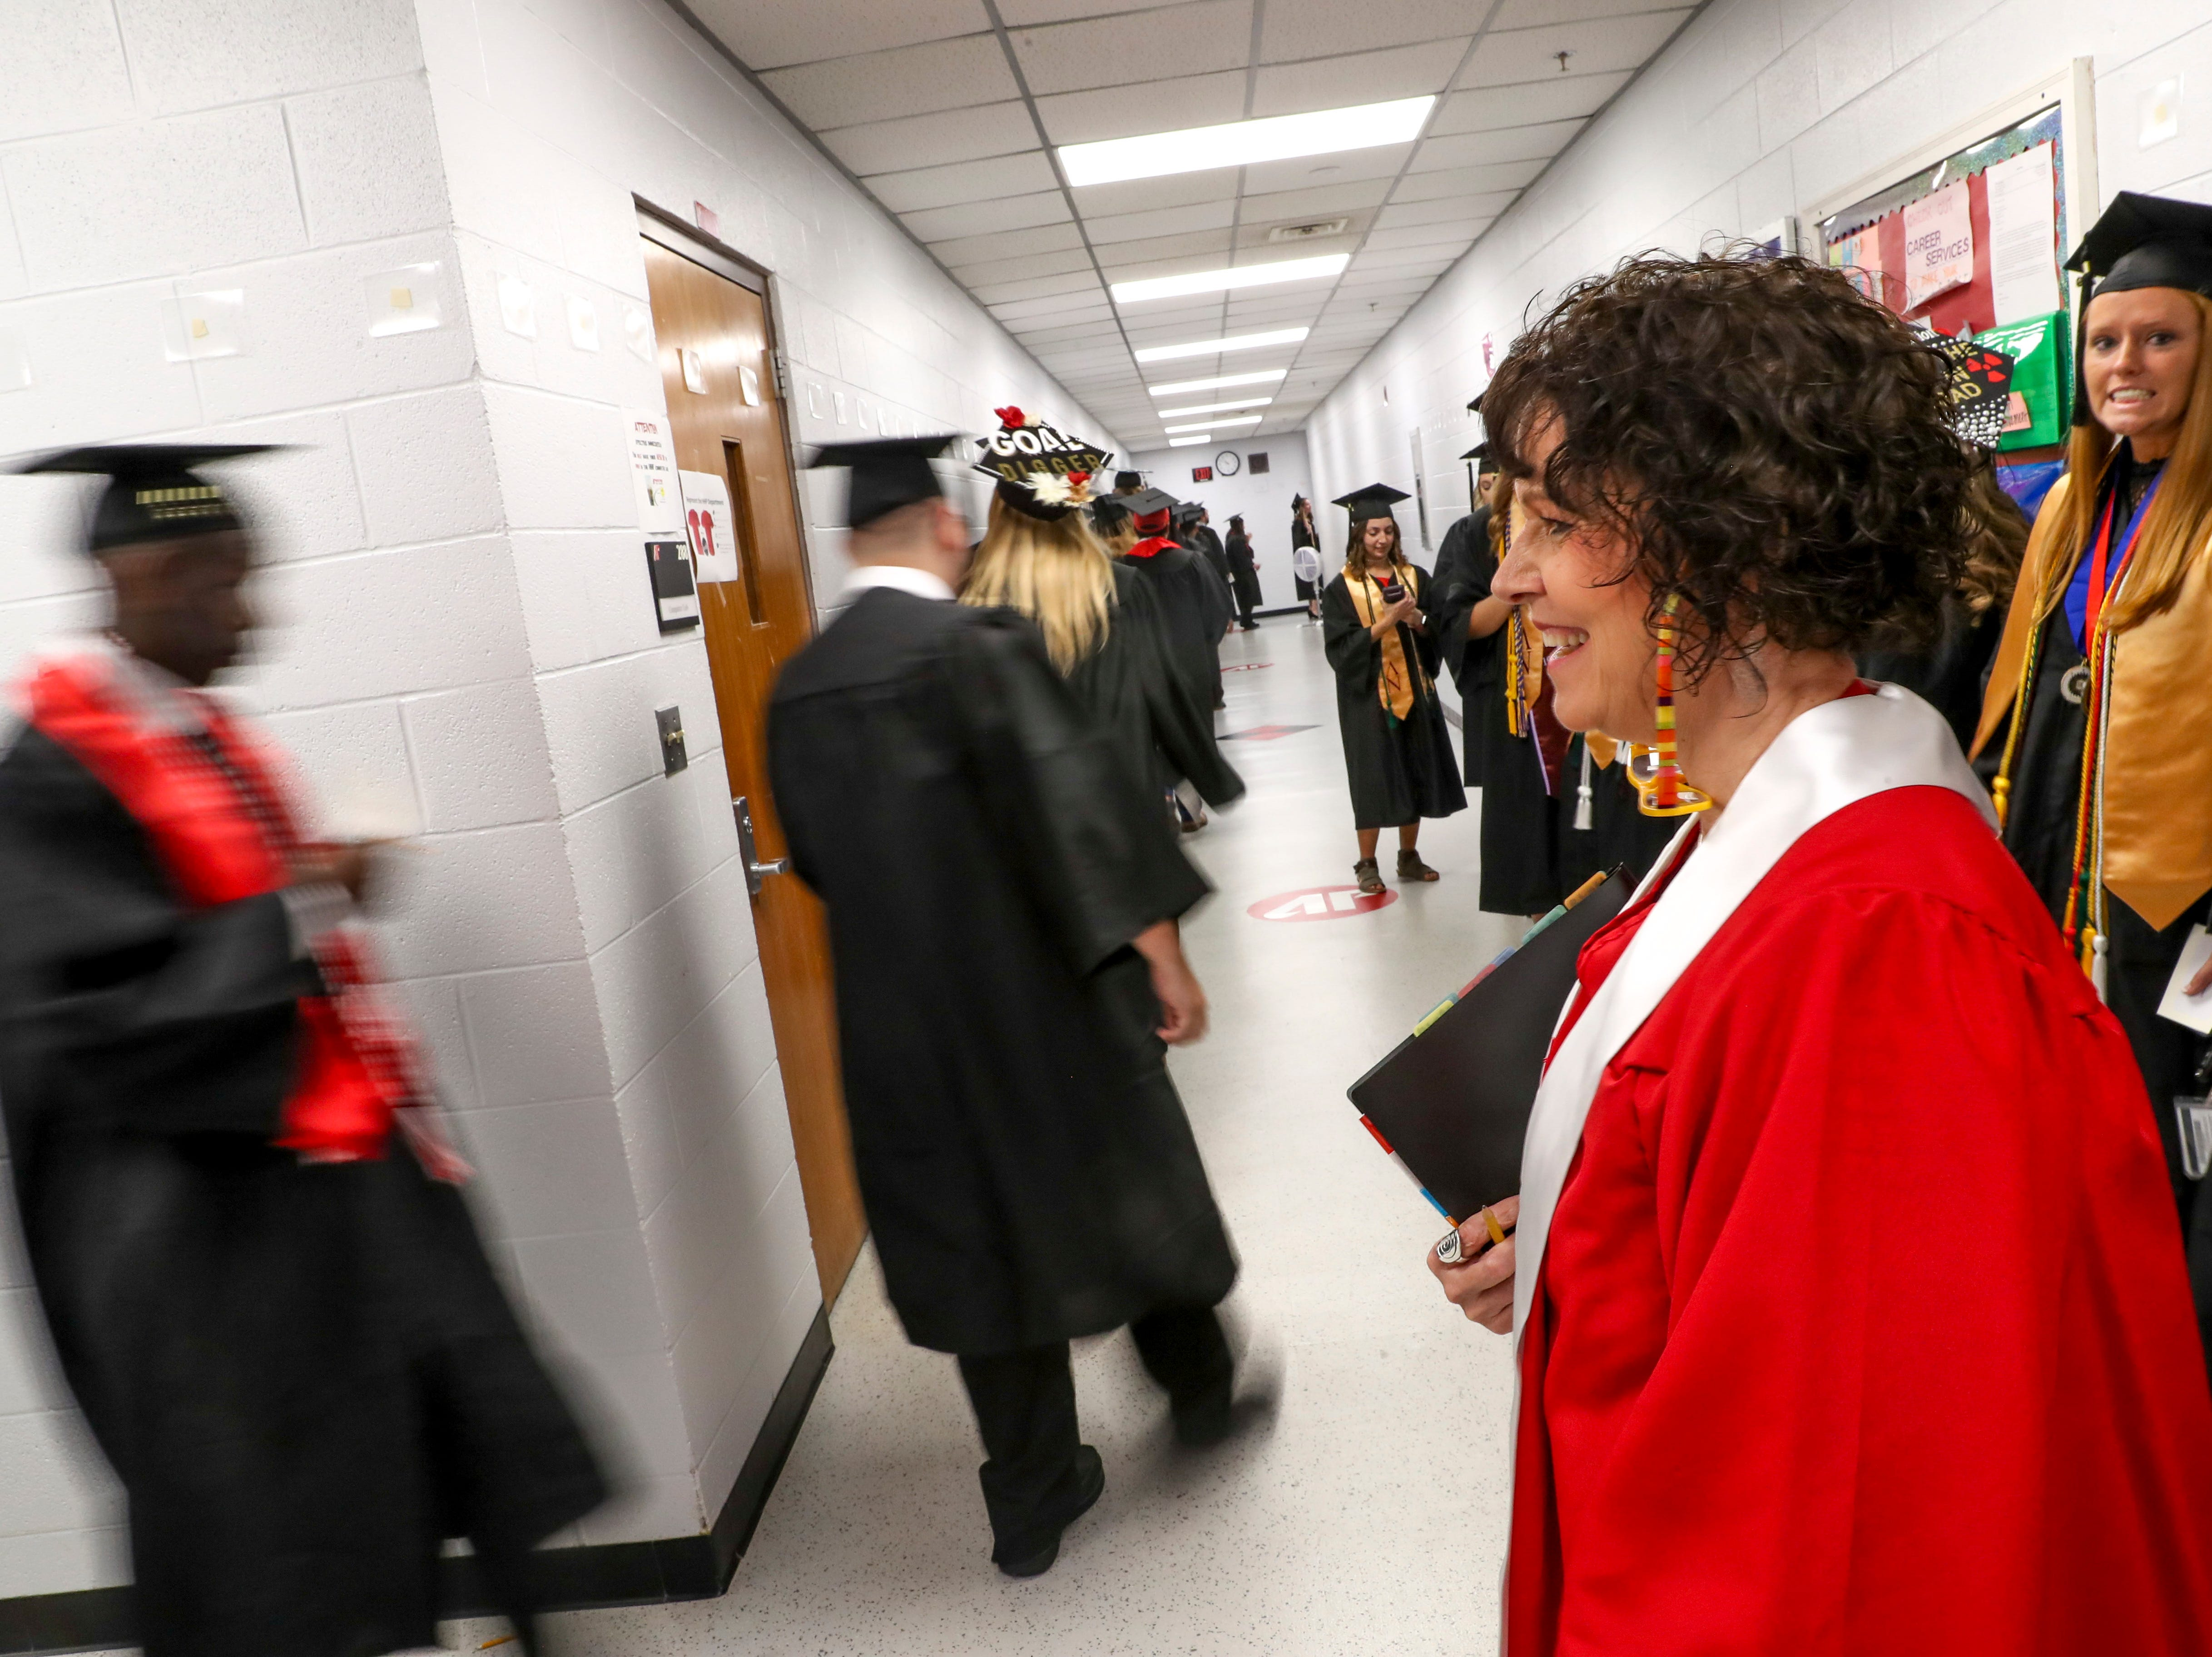 Students walk in file down the hallway before entering the auditorium at the Austin Peay spring commencement ceremony 2019 for College of Business and College of STEM at Winfield Dunn Center in Clarksville, Tenn., on Friday, May 3, 2019.